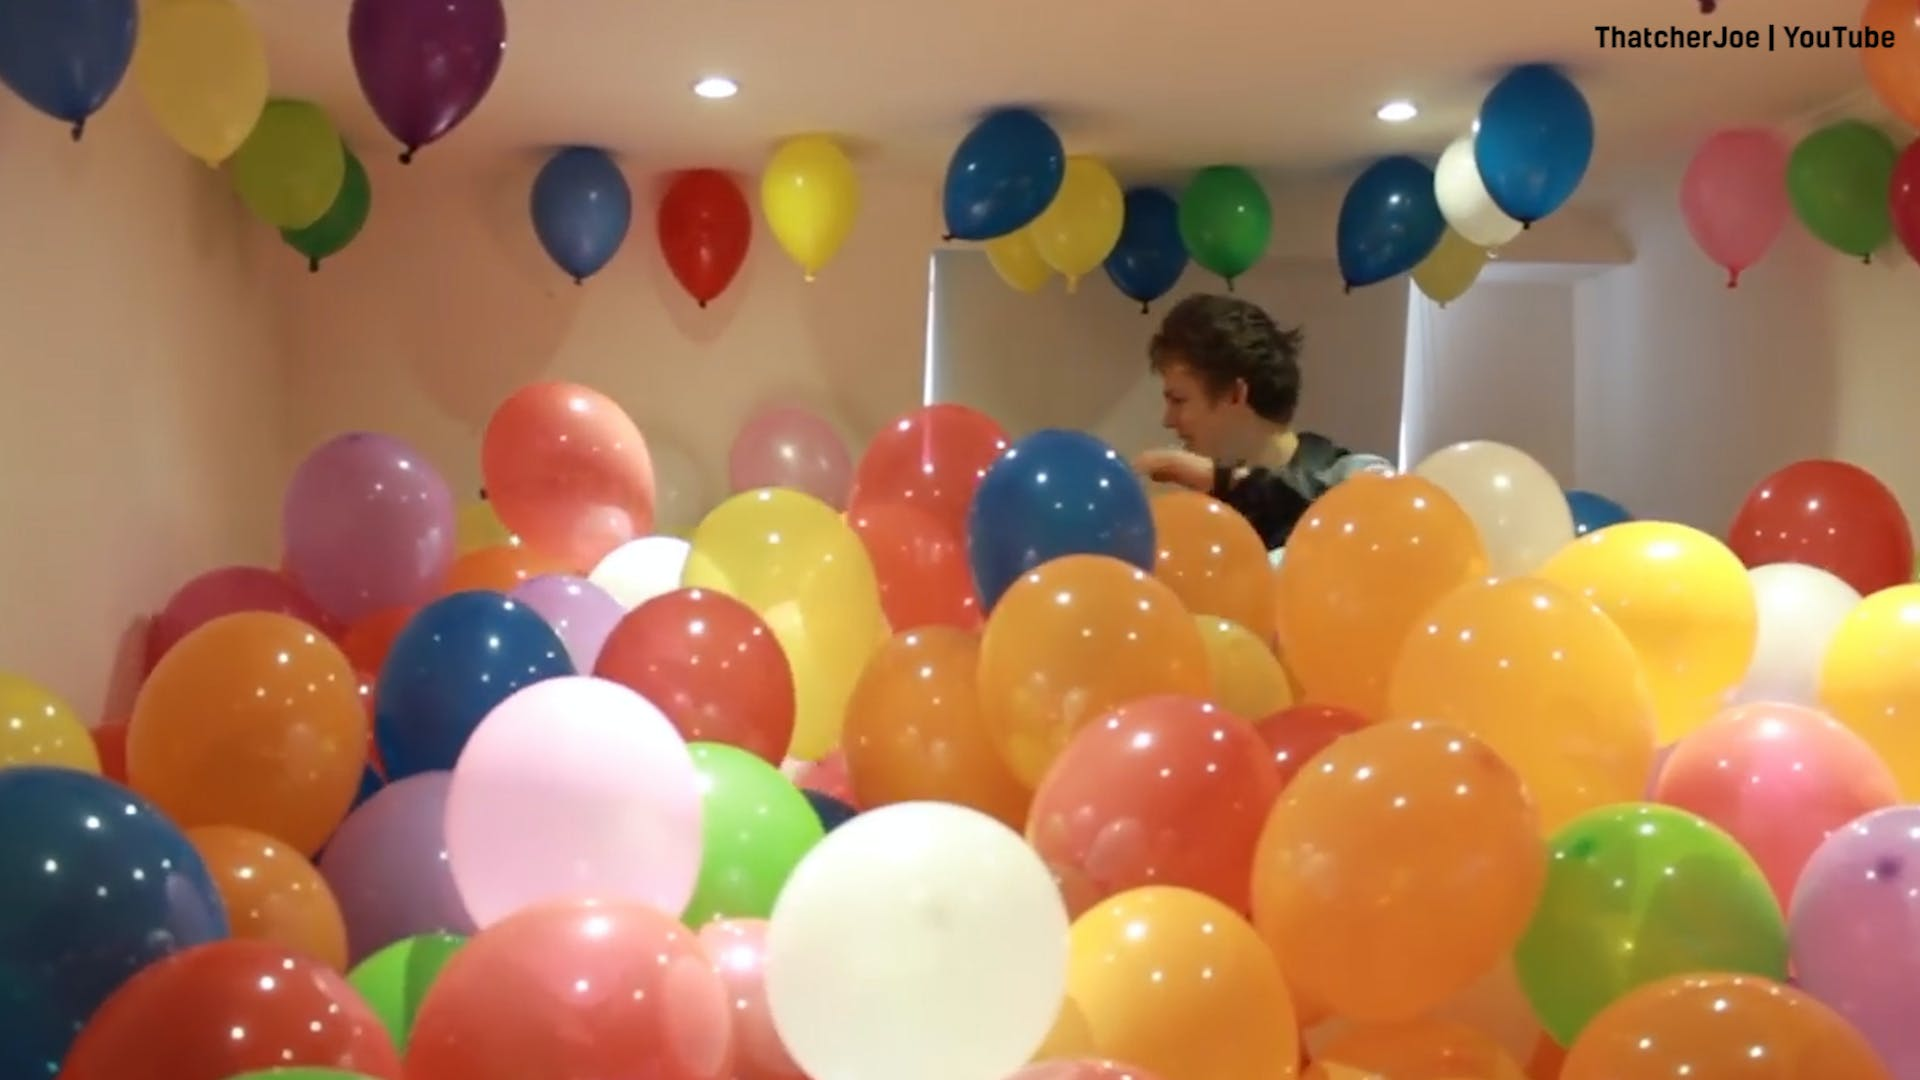 Joe Sugg's balloon prank